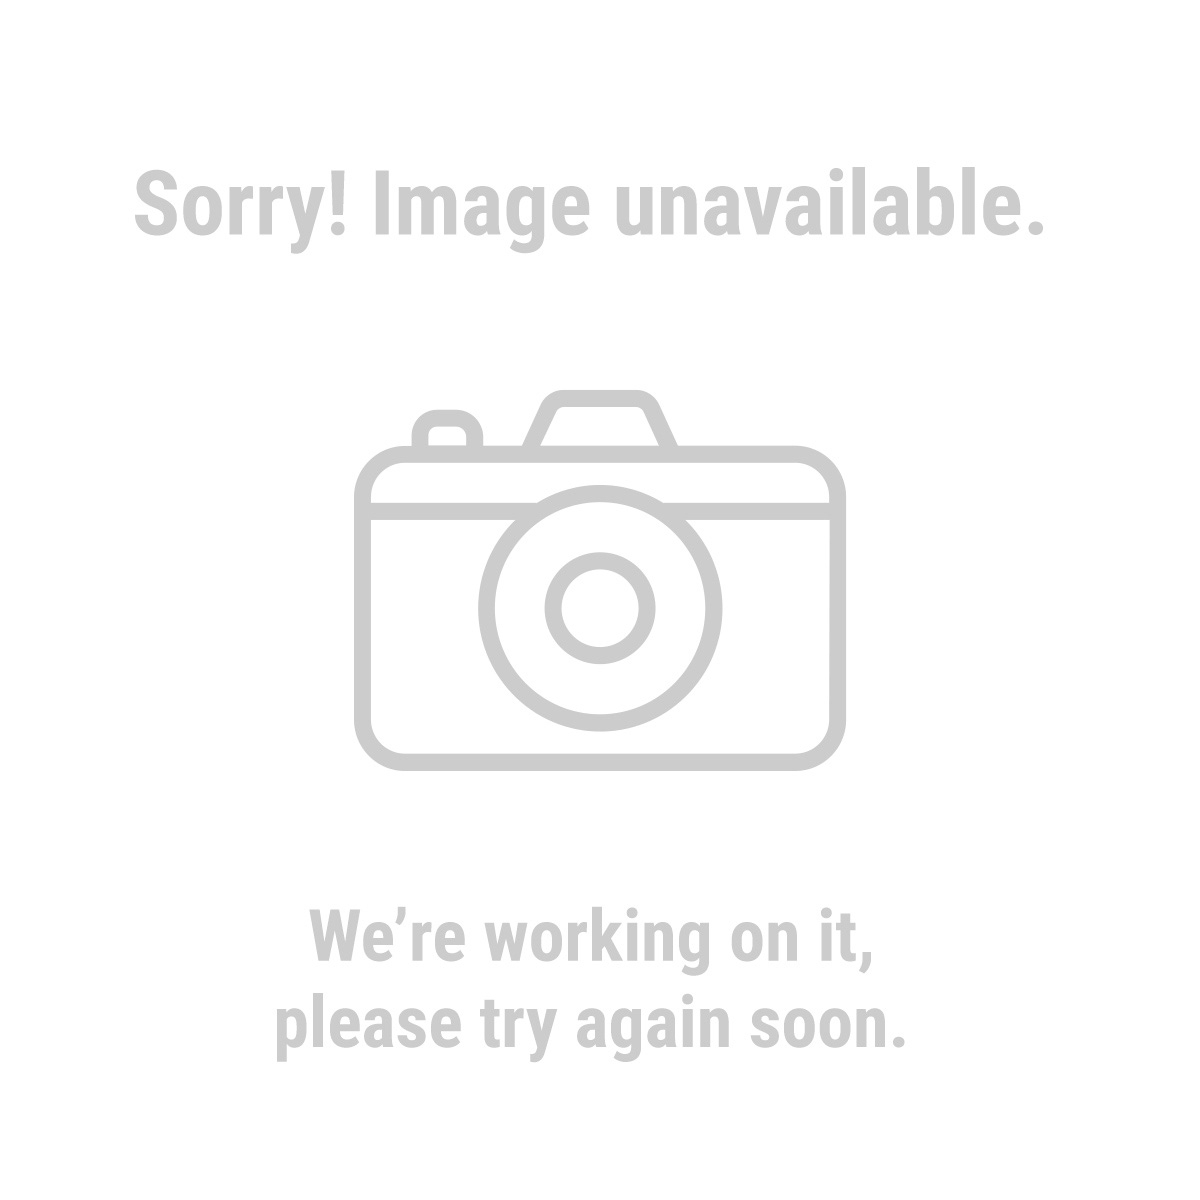 Chicago Electric Power Tools 94071 3 In. Mini Tool Grinder with Buffing Wheel